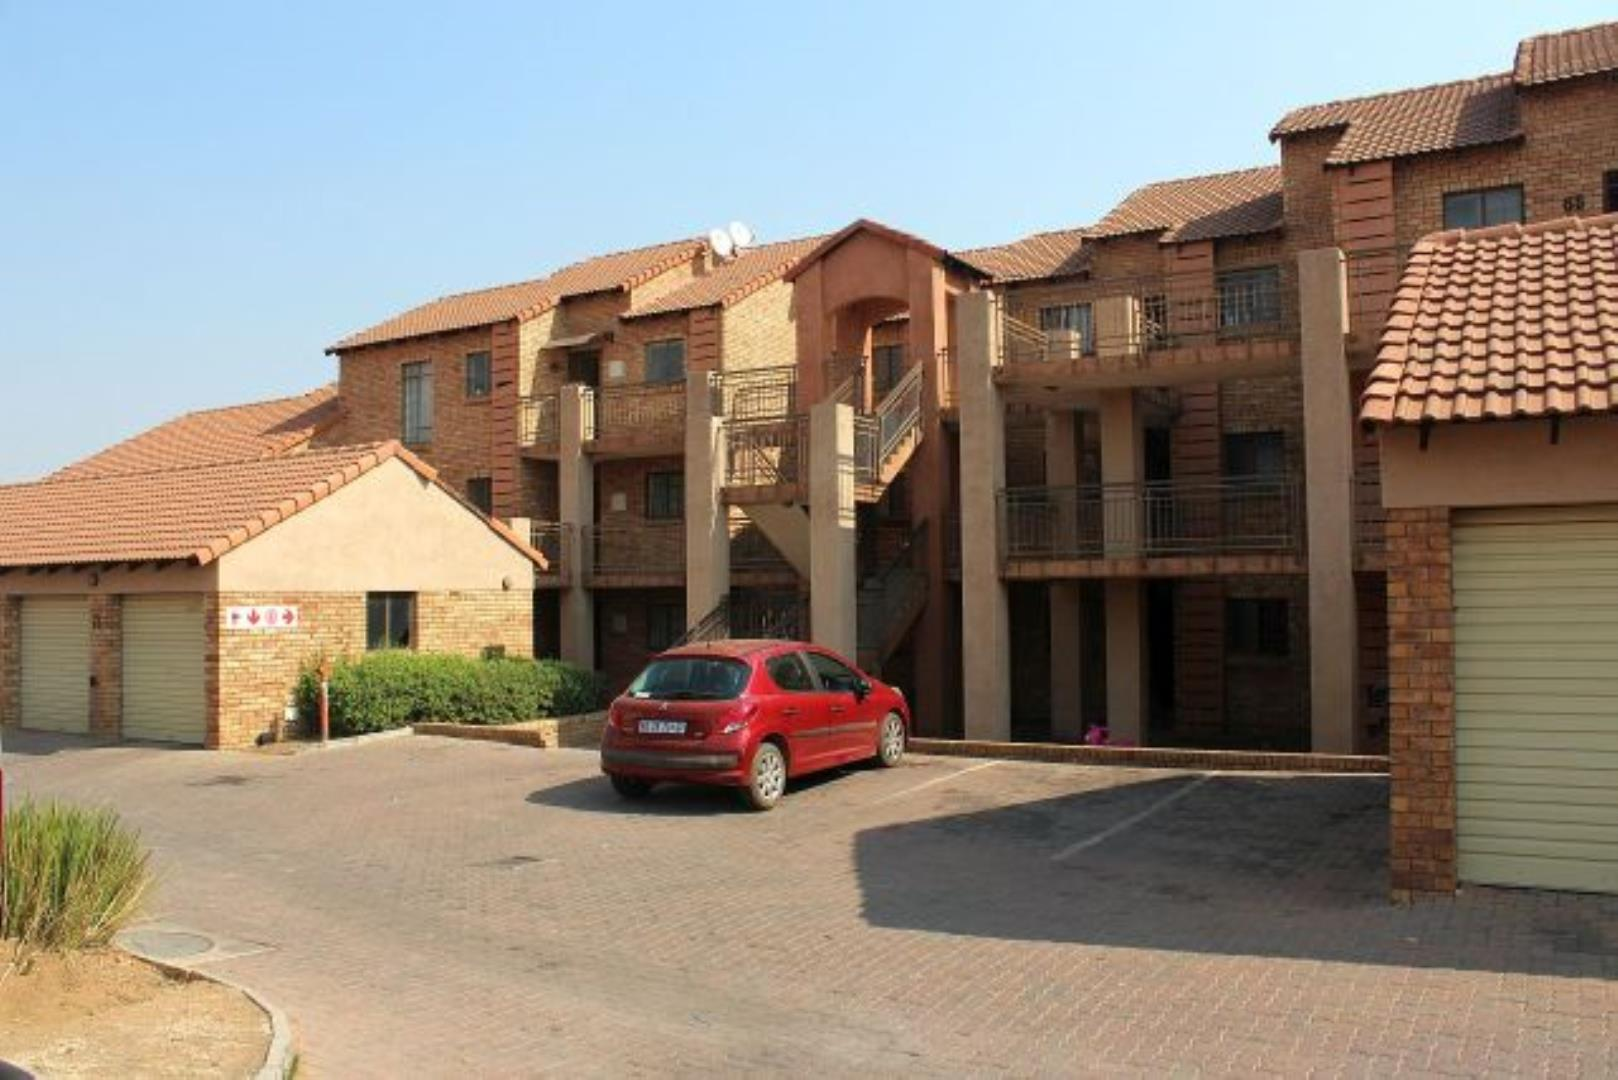 2 Bedroom Apartment for Sale in Sagewood, Midrand - Gauteng